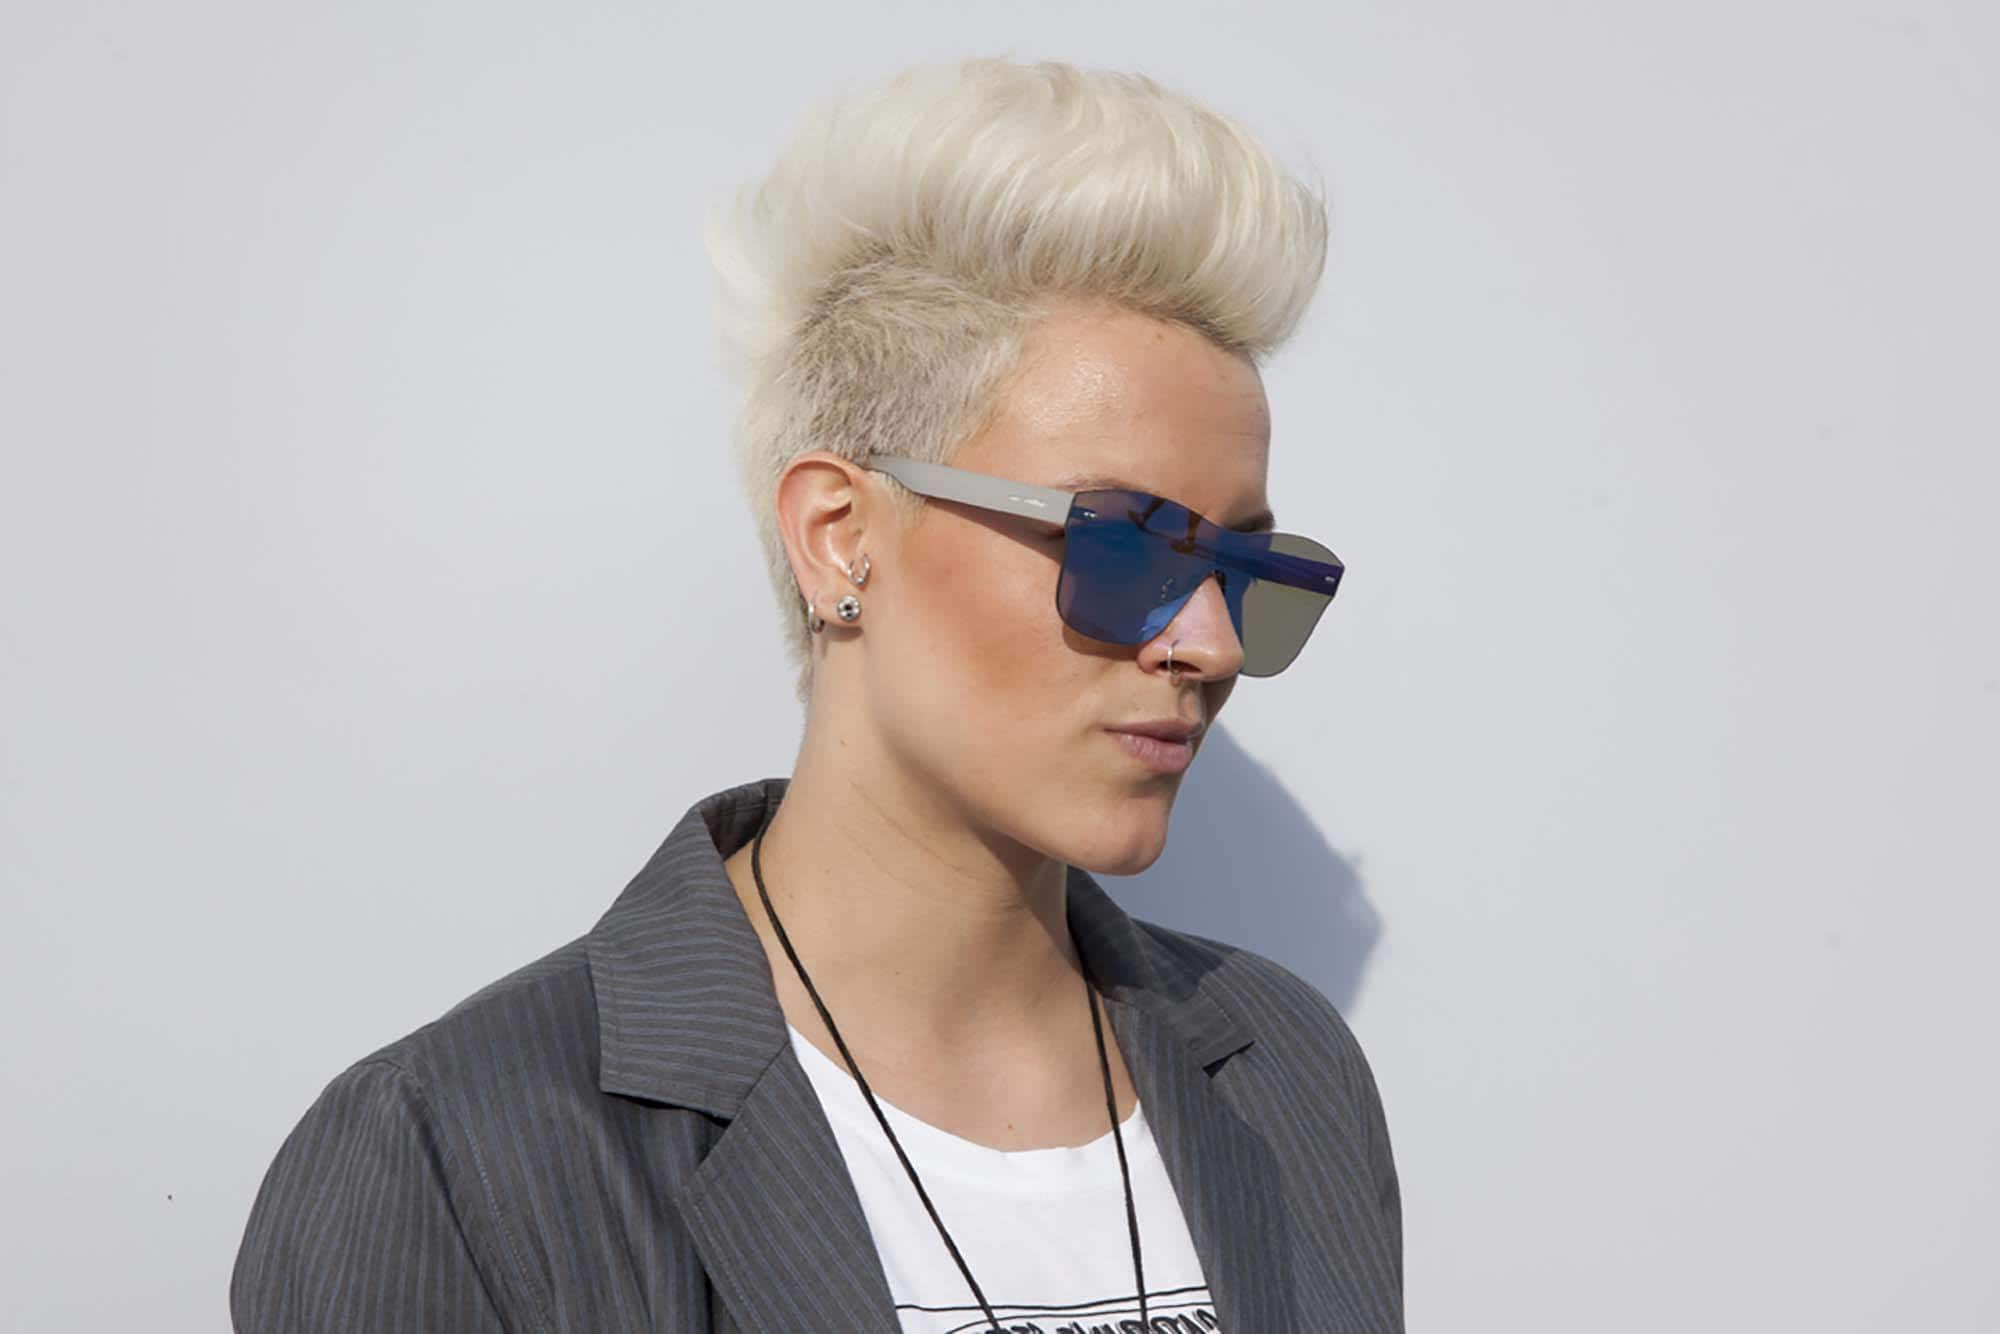 Short Spiky Haircuts: 5 Edgy Looks You'll Love With Regard To Current Soft Spiked Mohawk Hairstyles (View 9 of 20)